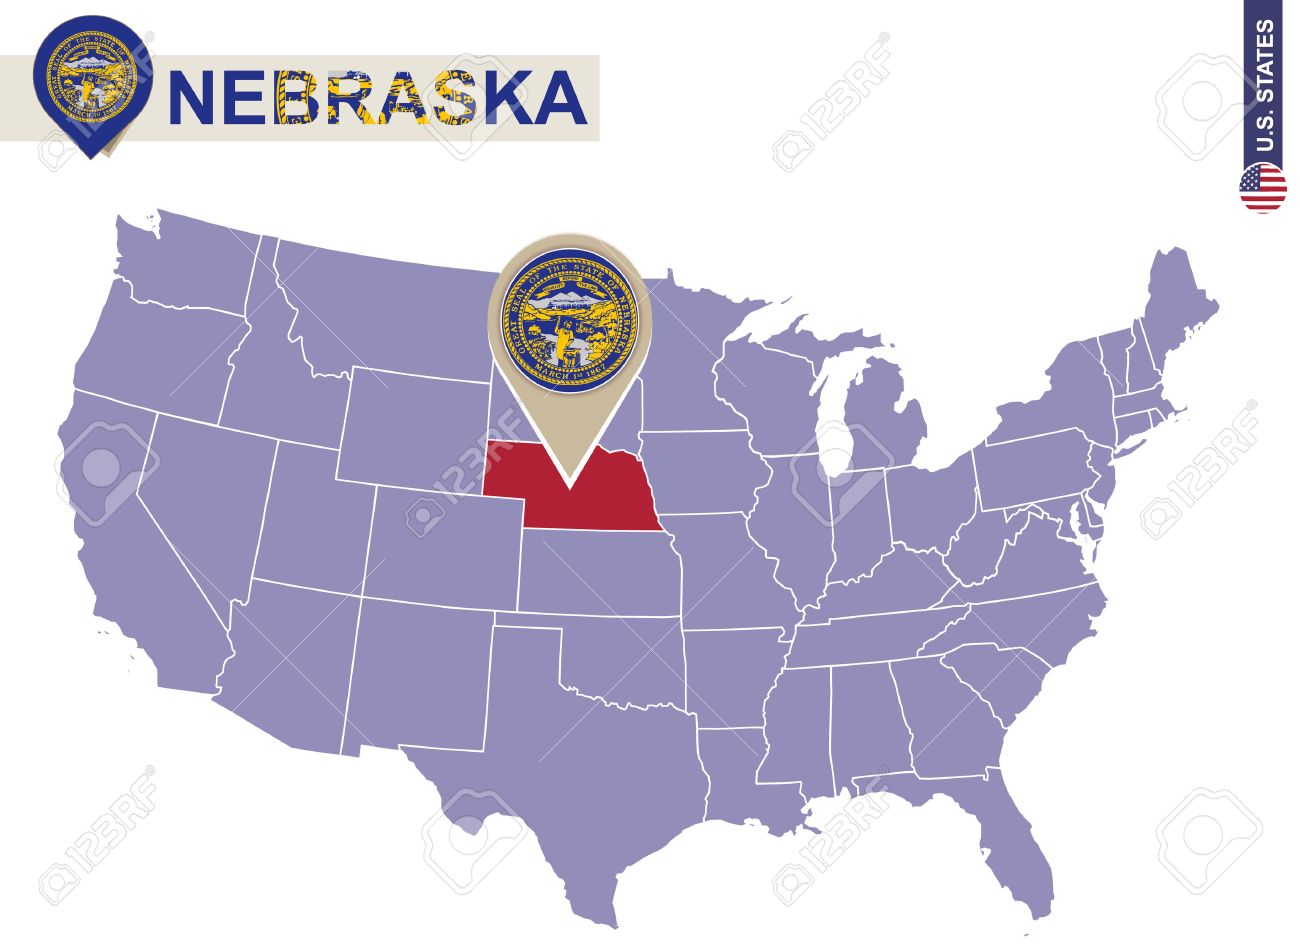 Us Map Nebraska State Nebraska State On USA Map. Nebraska Flag And Map. US States